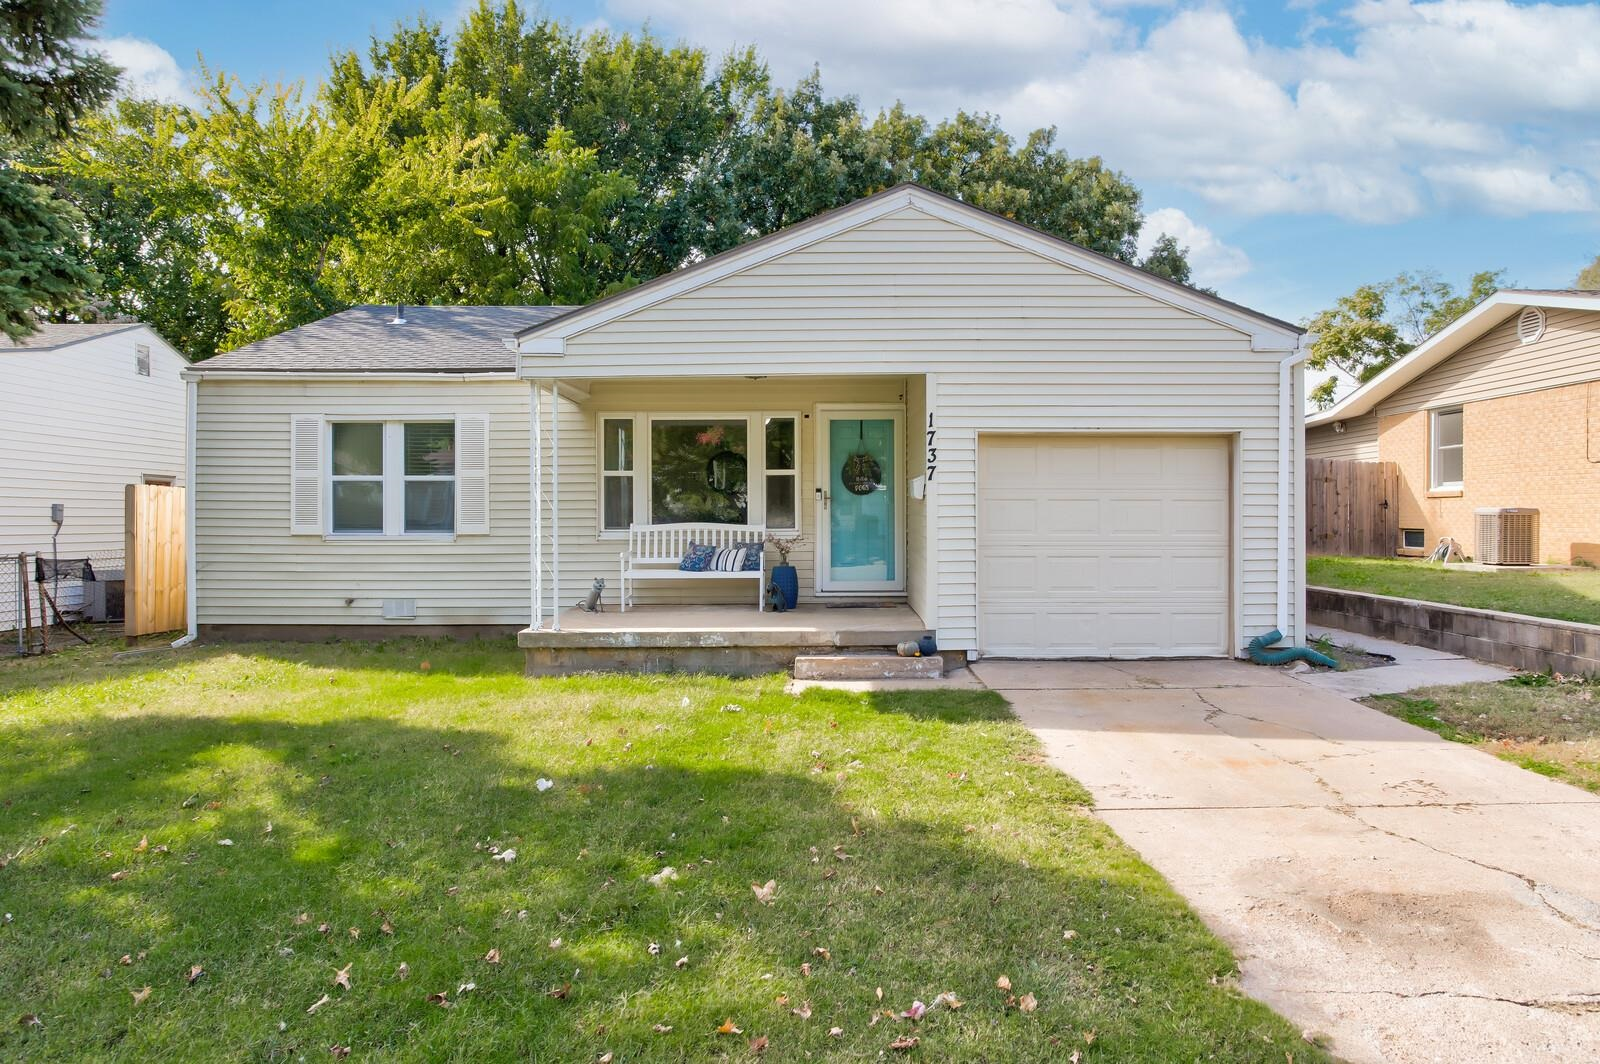 Are you looking for a truly move-in ready home?  This house is it!  Upon entry, you'll see the fresh